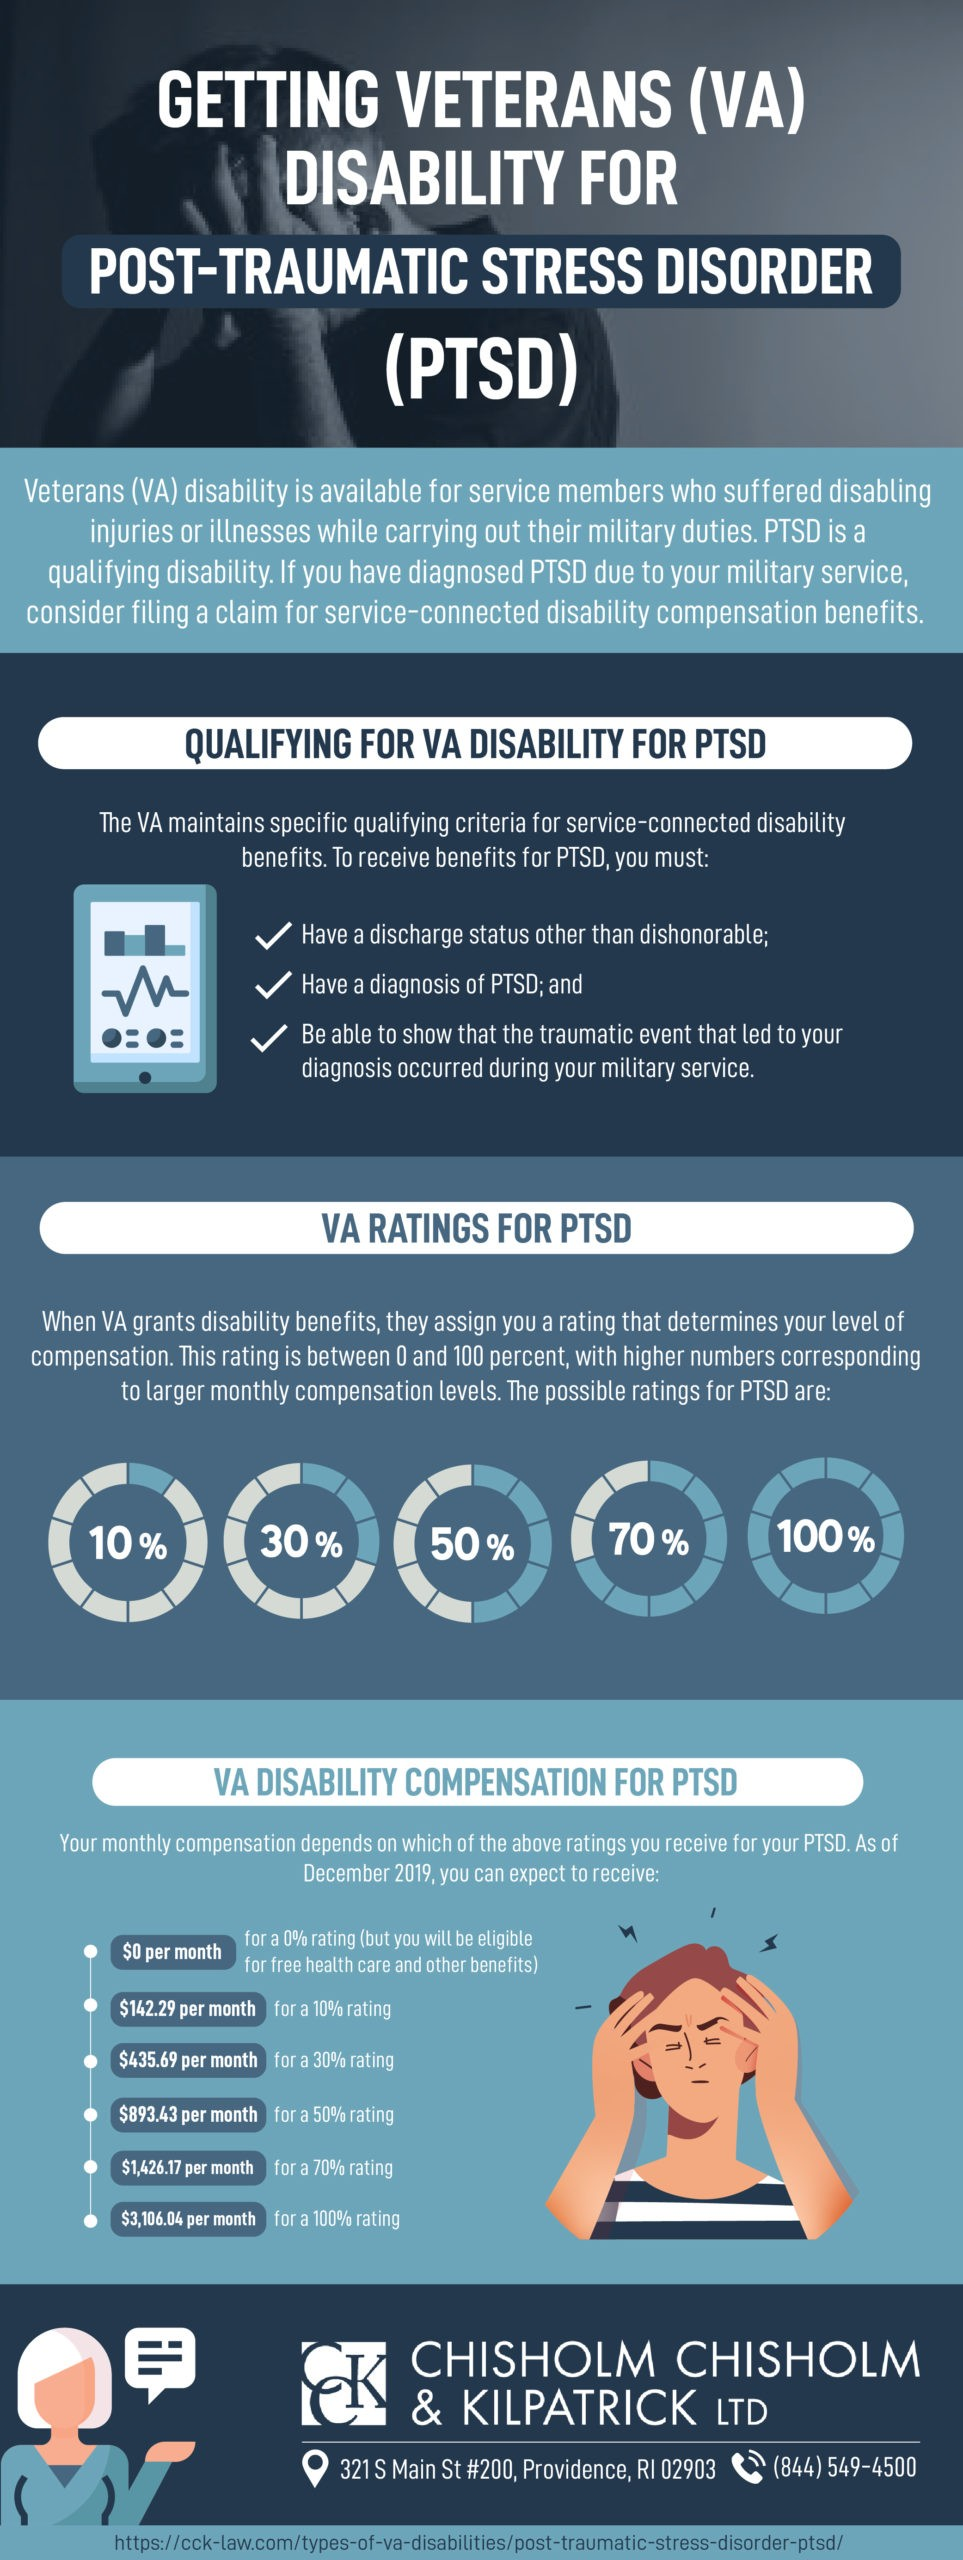 Getting Veterans (VA) Disability for Post-Traumatic Stress Disorder (PTSD)